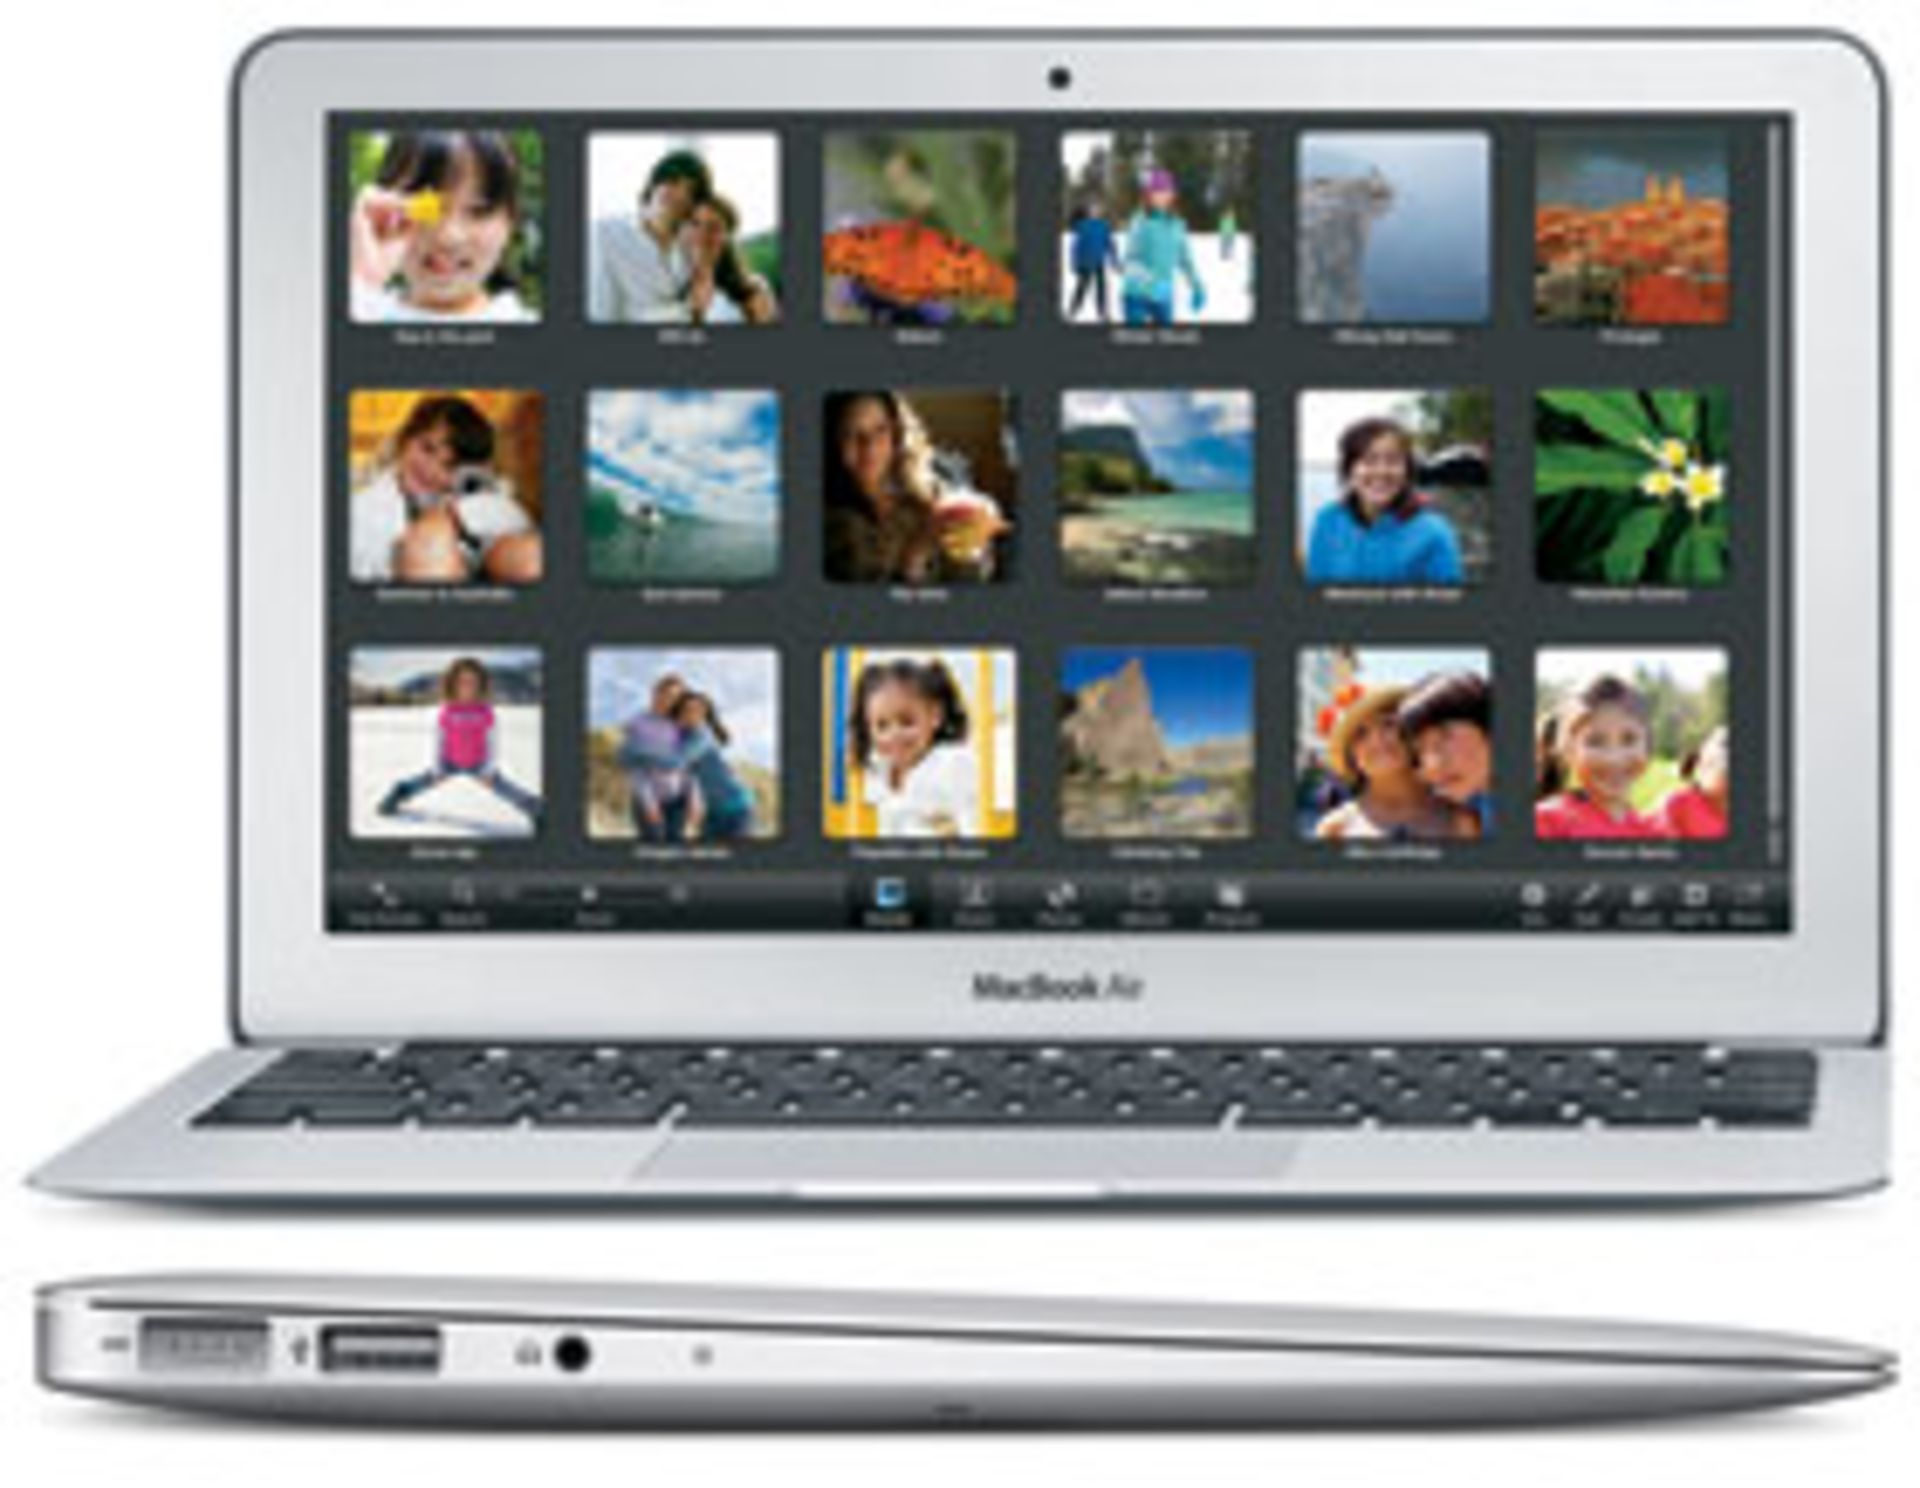 Lot 60050 - V Grade B Macbook Air 11.6 Inch Core 2 Duo - 64GB SSD - A1370 - Available Approx 7 Working Days